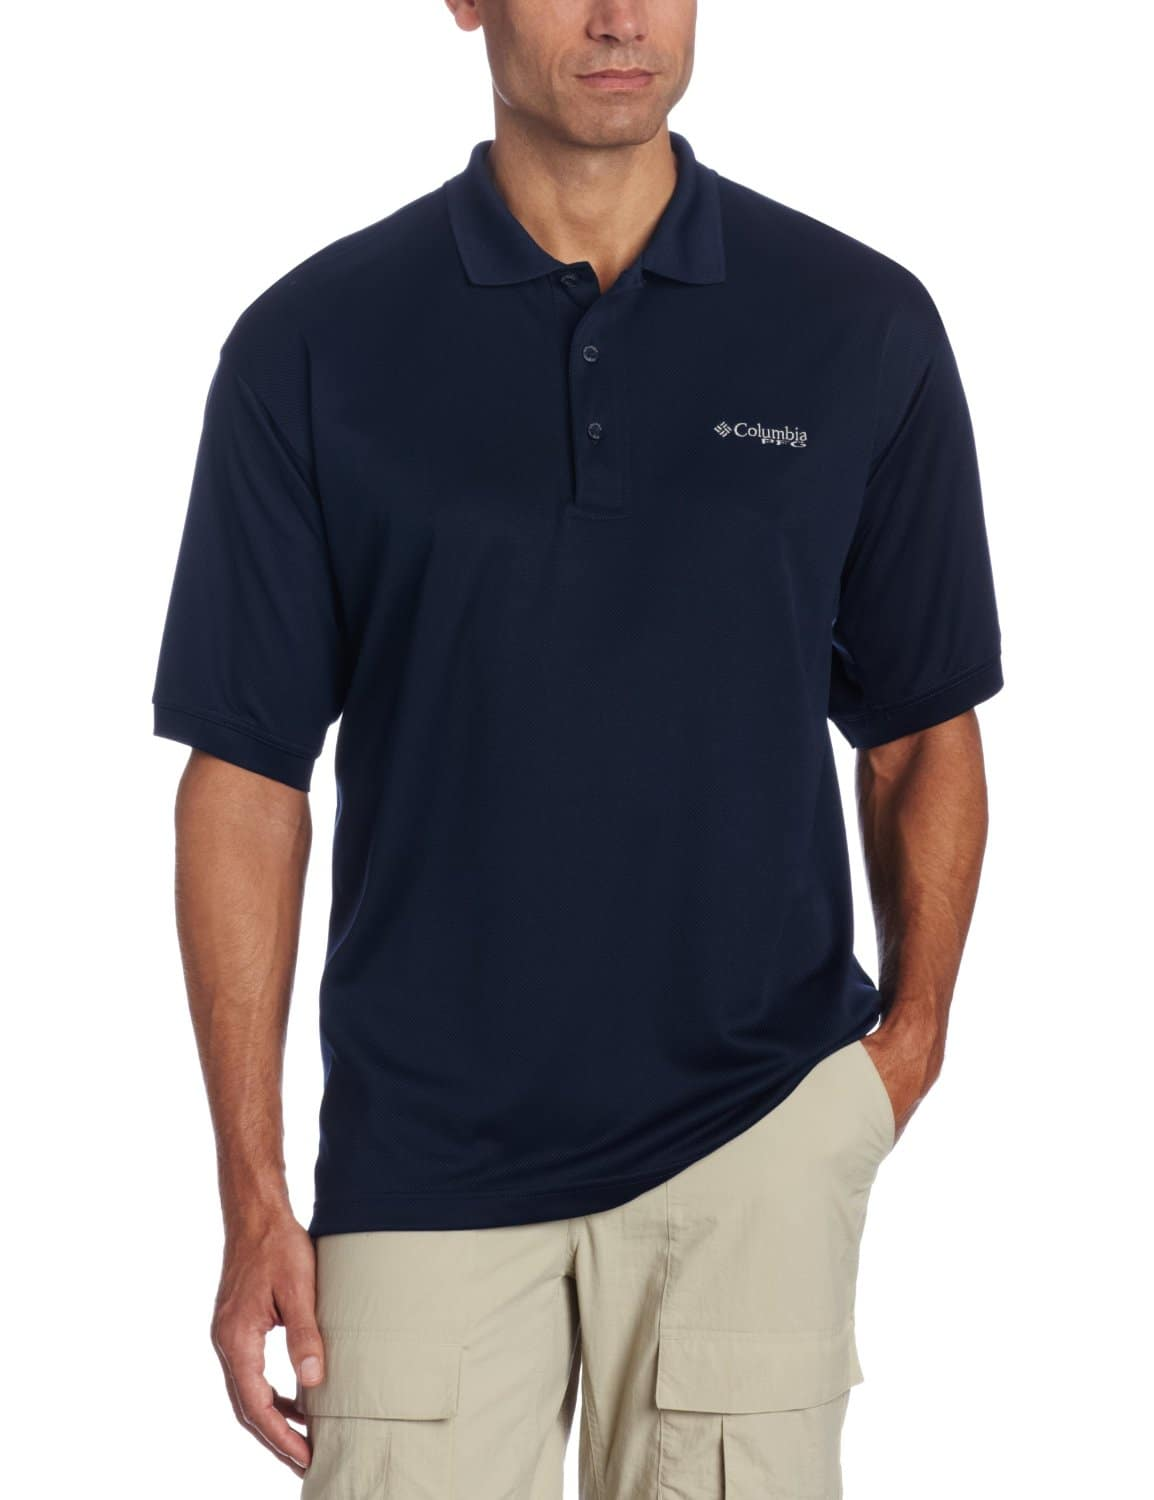 Columbia Men's Perfect Cast Polo (Sizes S, M, L, XL, XXL) $9.50 + Free Shipping from Amazon